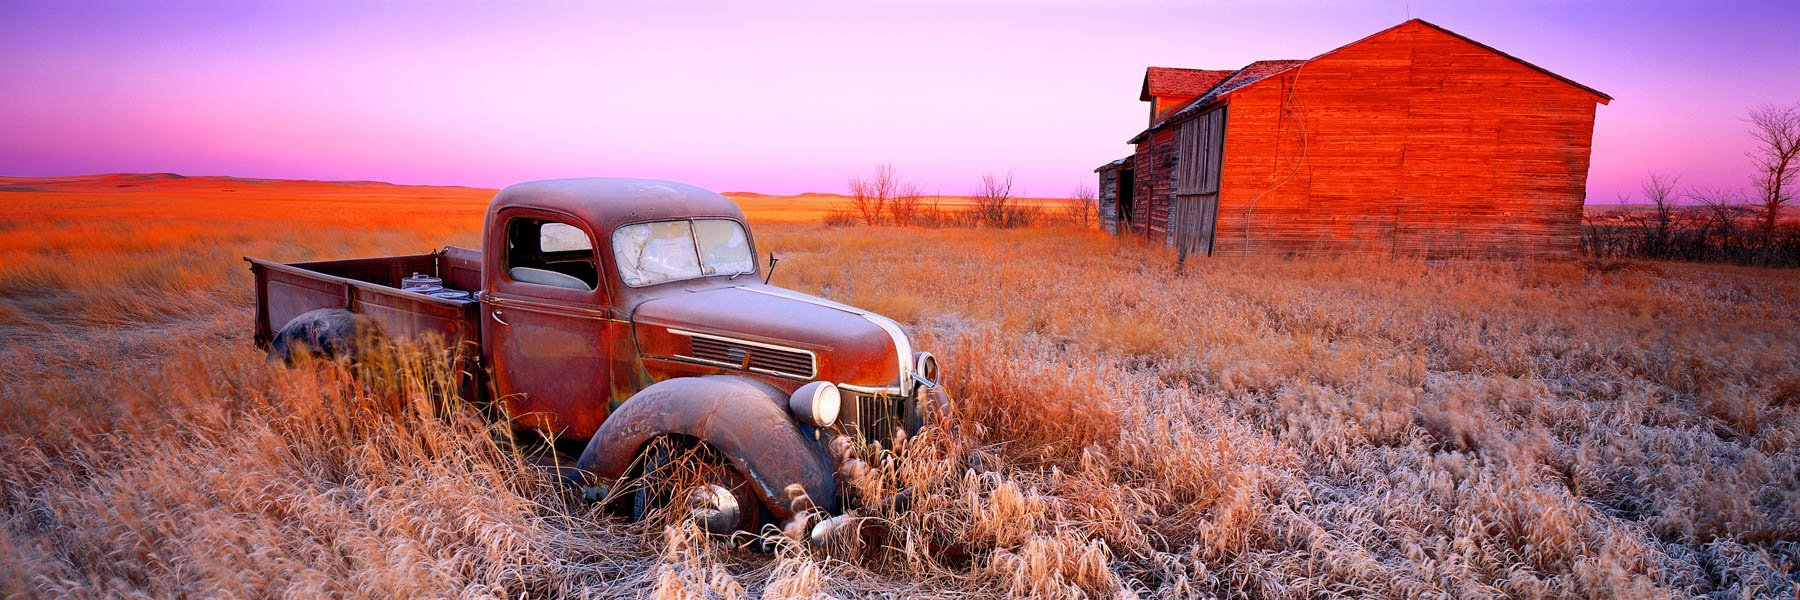 An old abandoned pickup up truck in a paddock, North Dakota, USA.